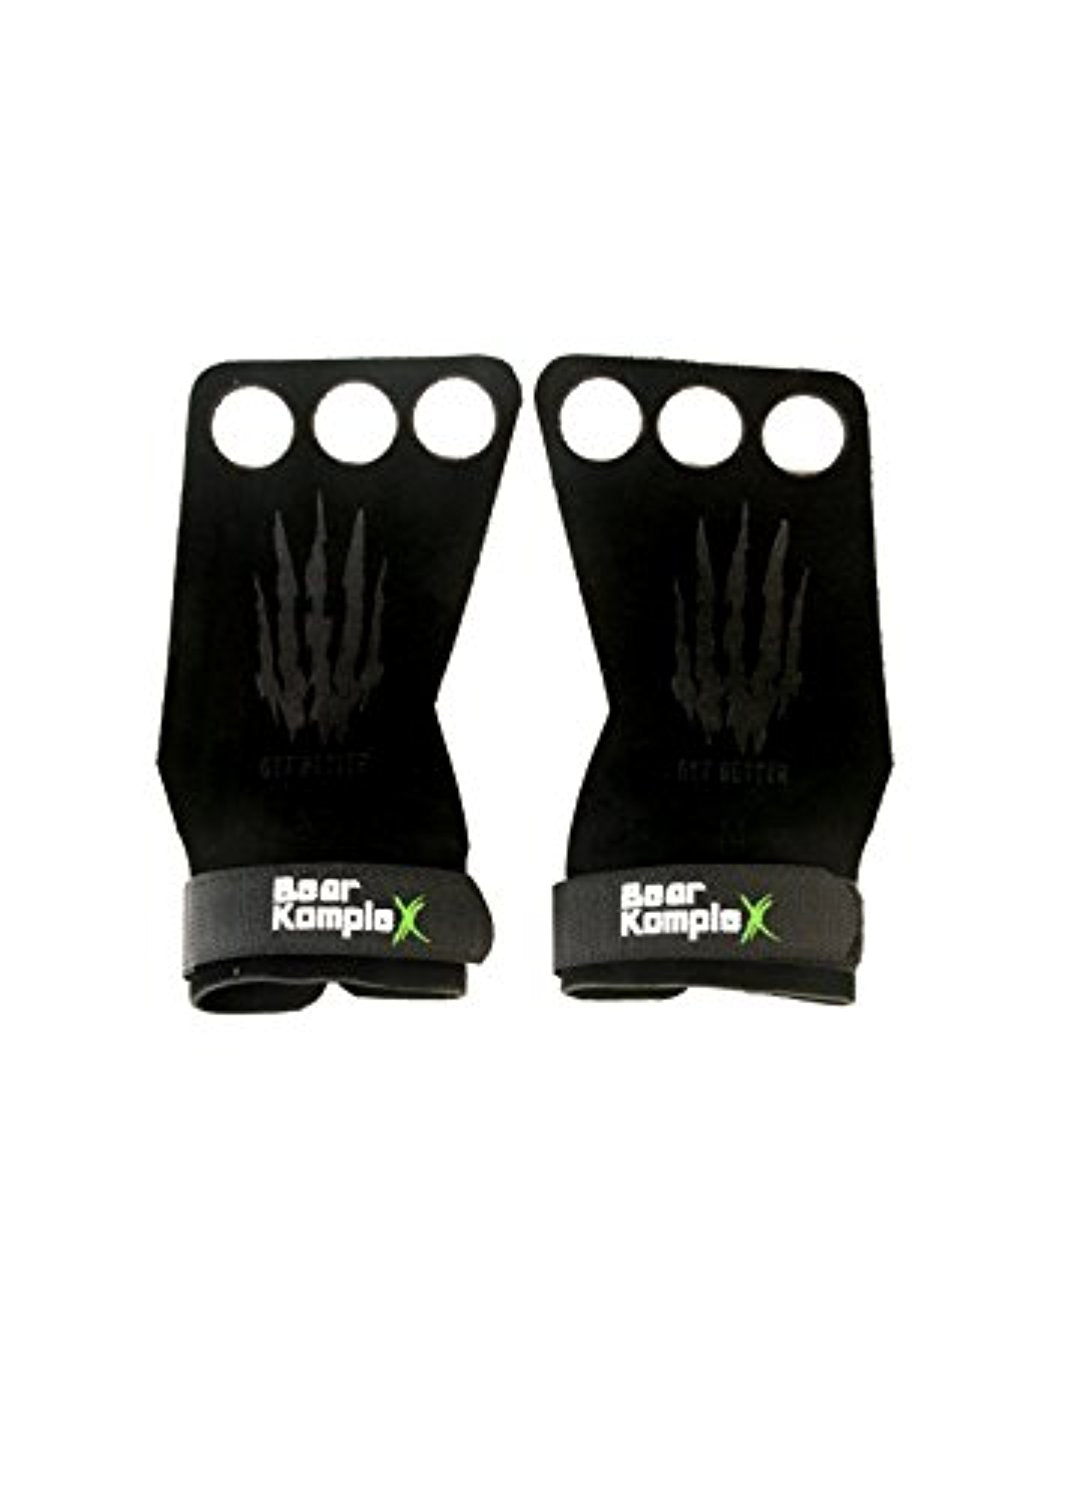 3 hole hand grips and gymnastics grips Great for any Cross Training Workout - Everyday Crosstrain